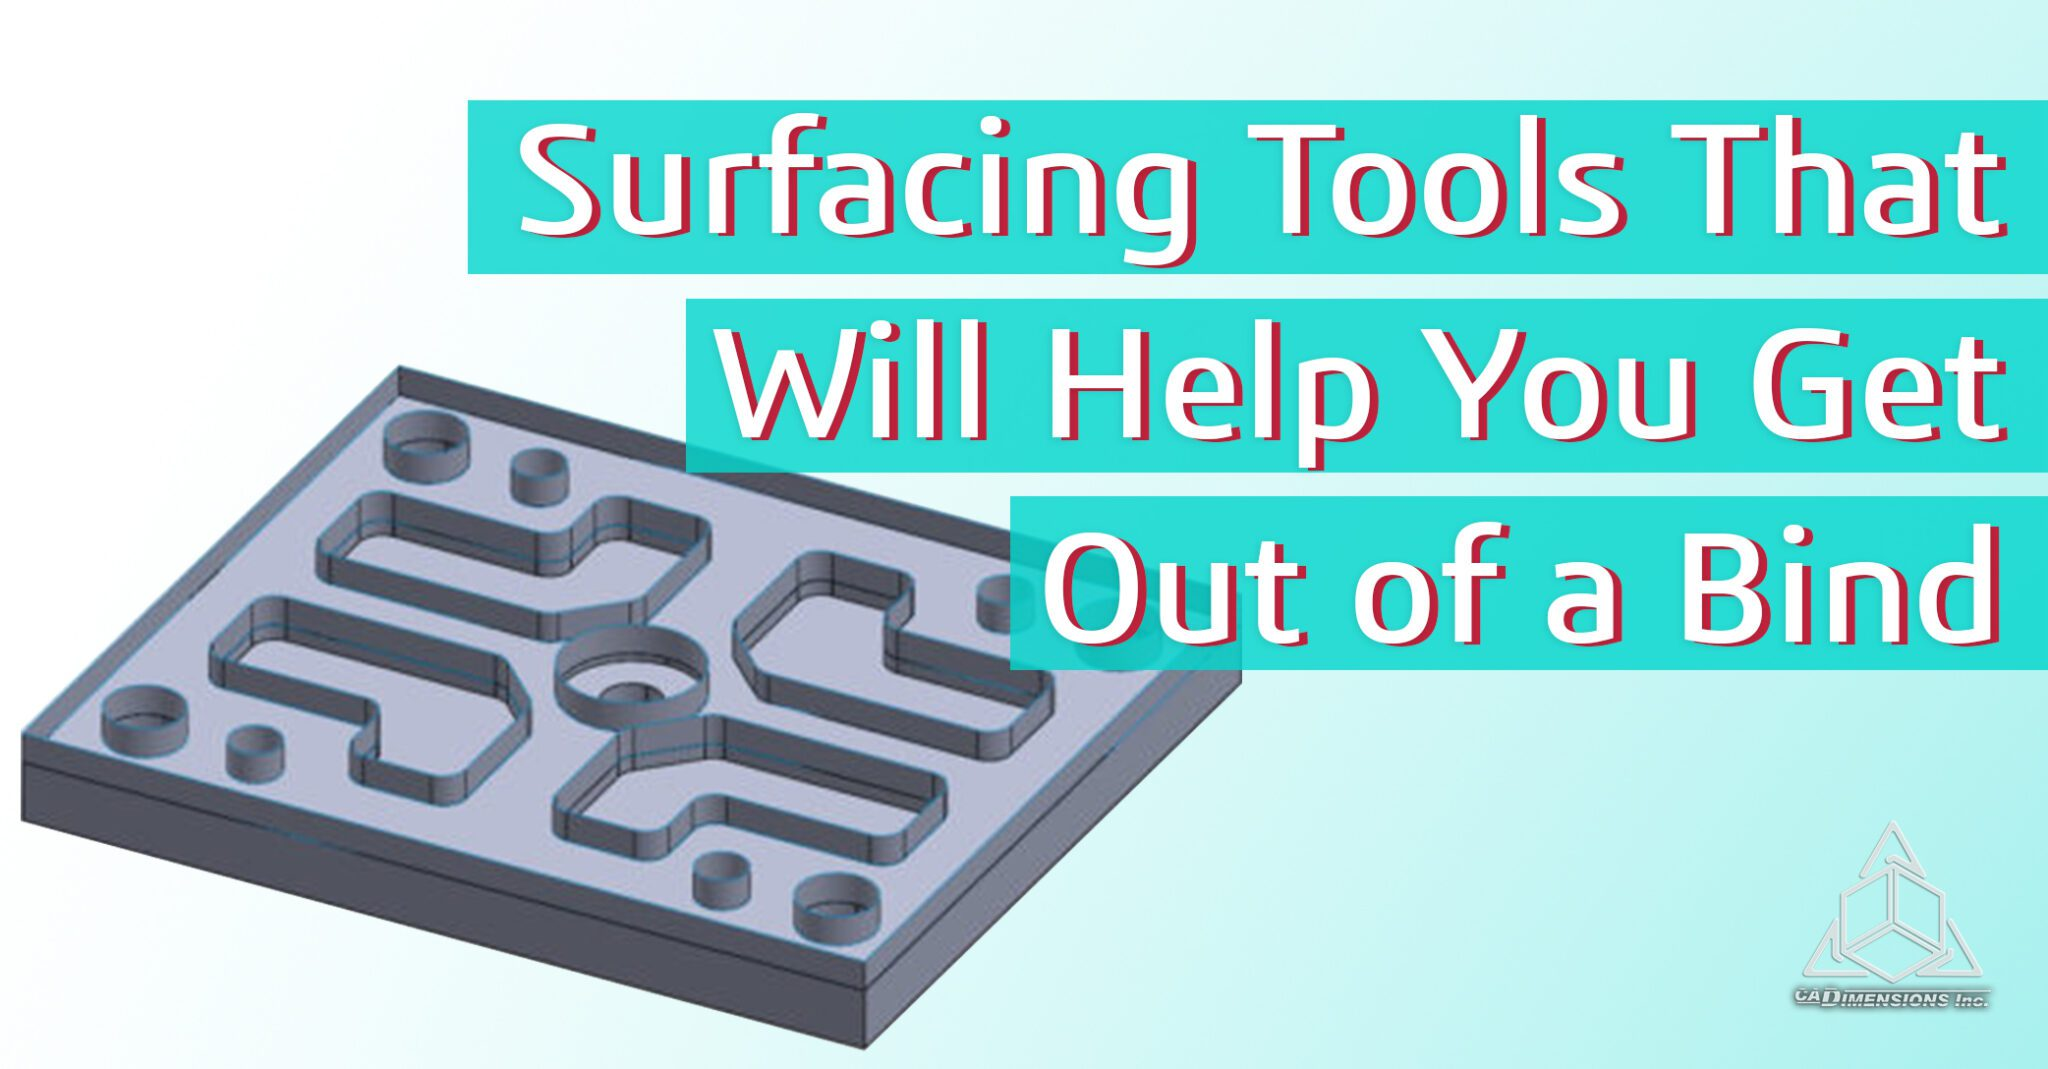 Surfacing Approach to Import Modifications - Part 1